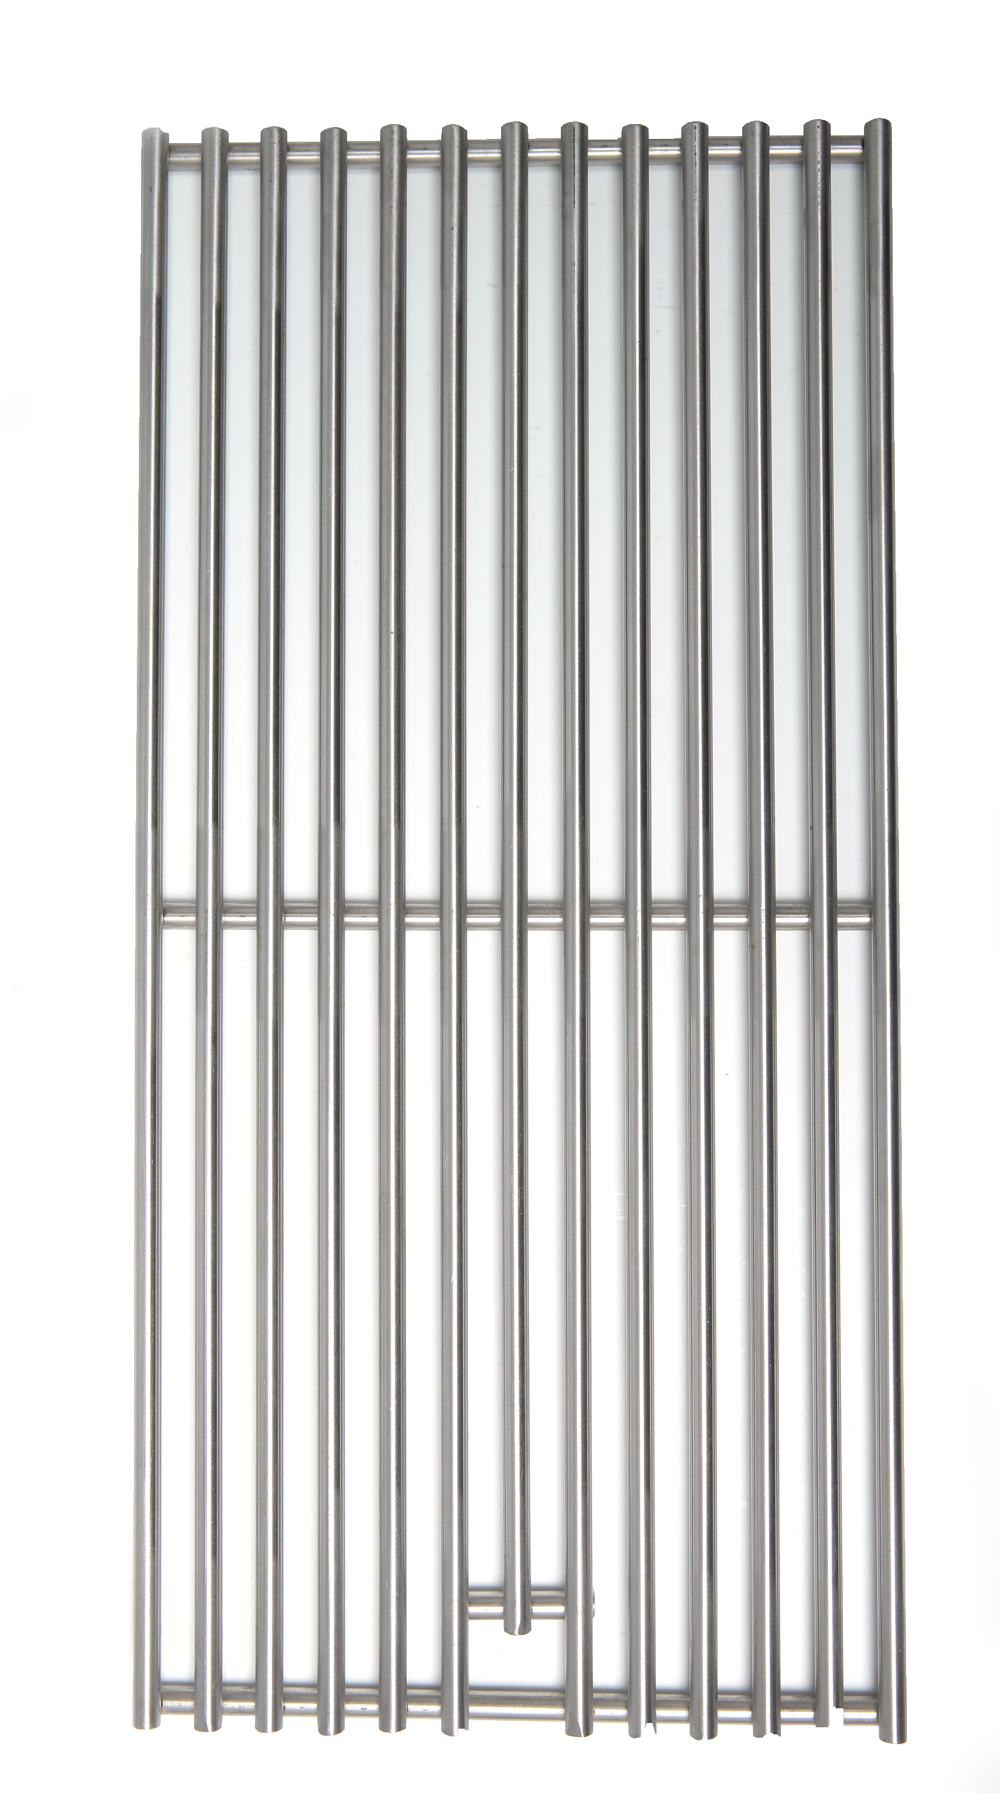 Stainless Steel Cooking Grate #G535-0044-01